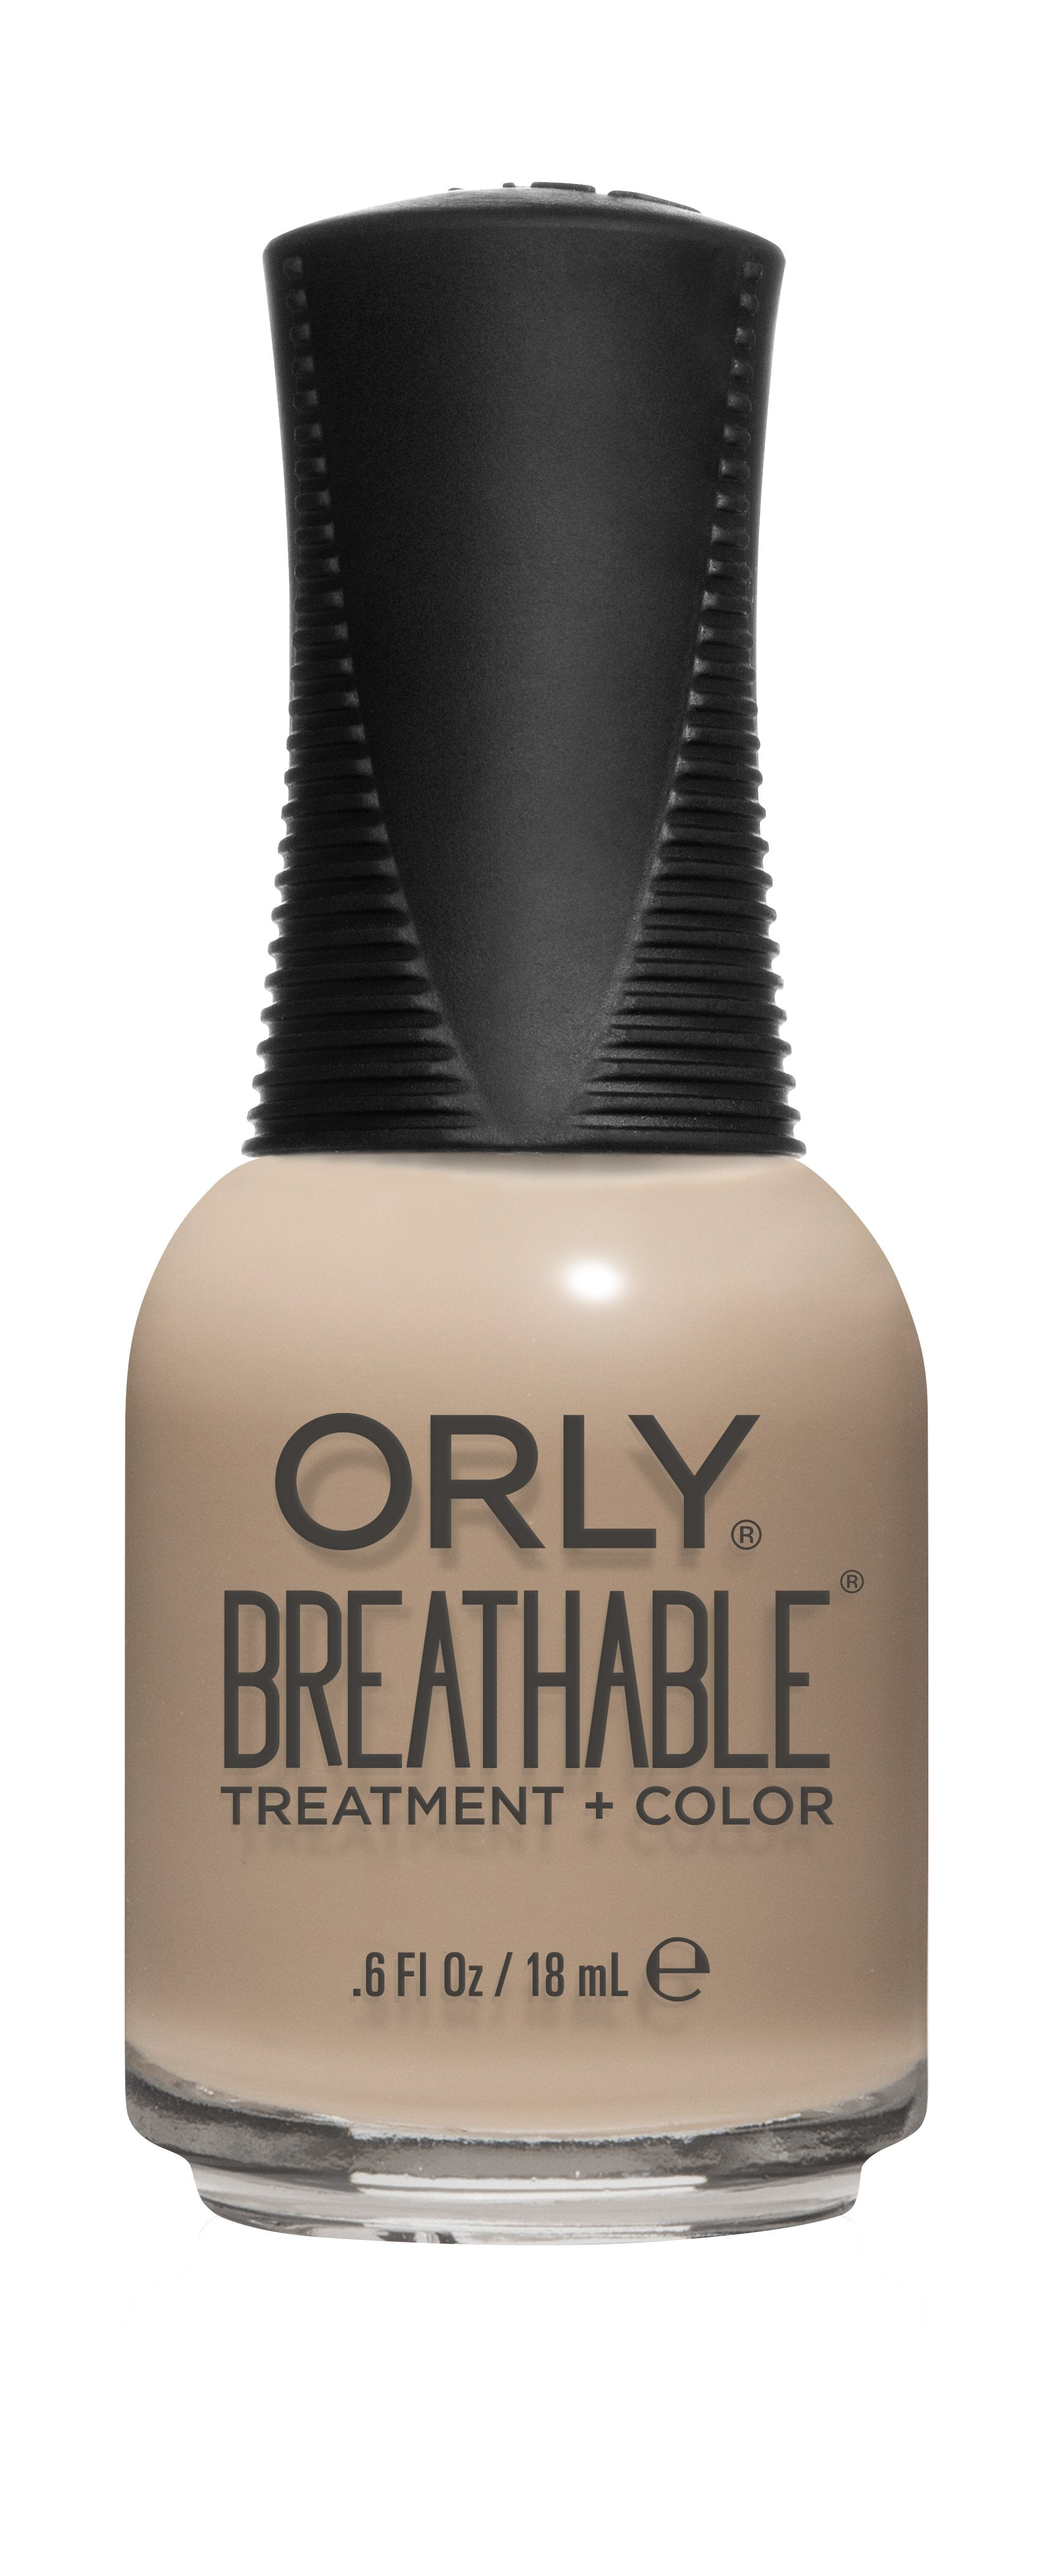 Bare Necessity - ORLY Breathable Treatment + Color